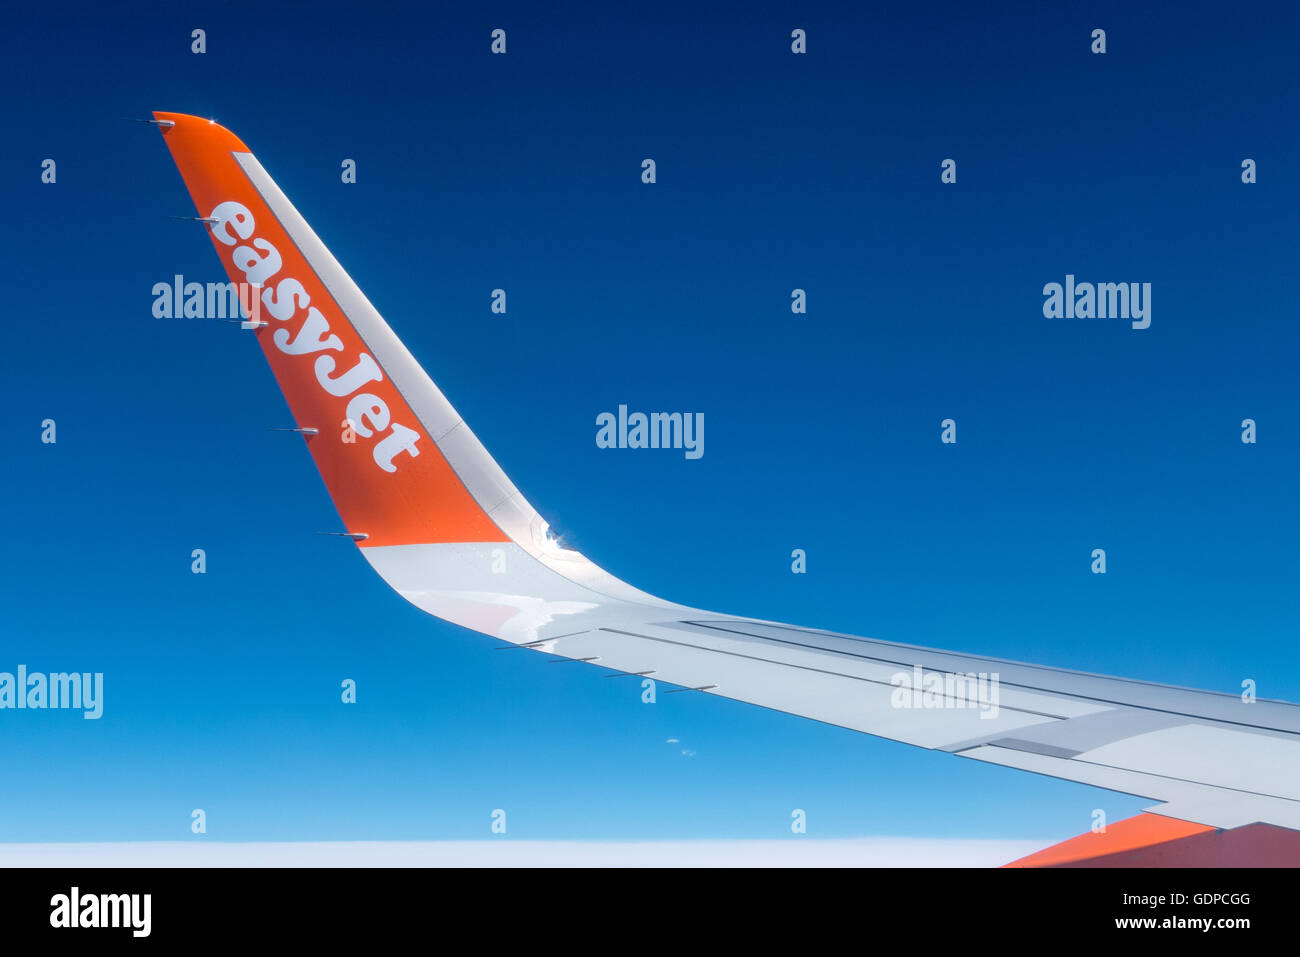 The wingtip of an EasyJet Airbus plane on the way to Spain. - Stock Image